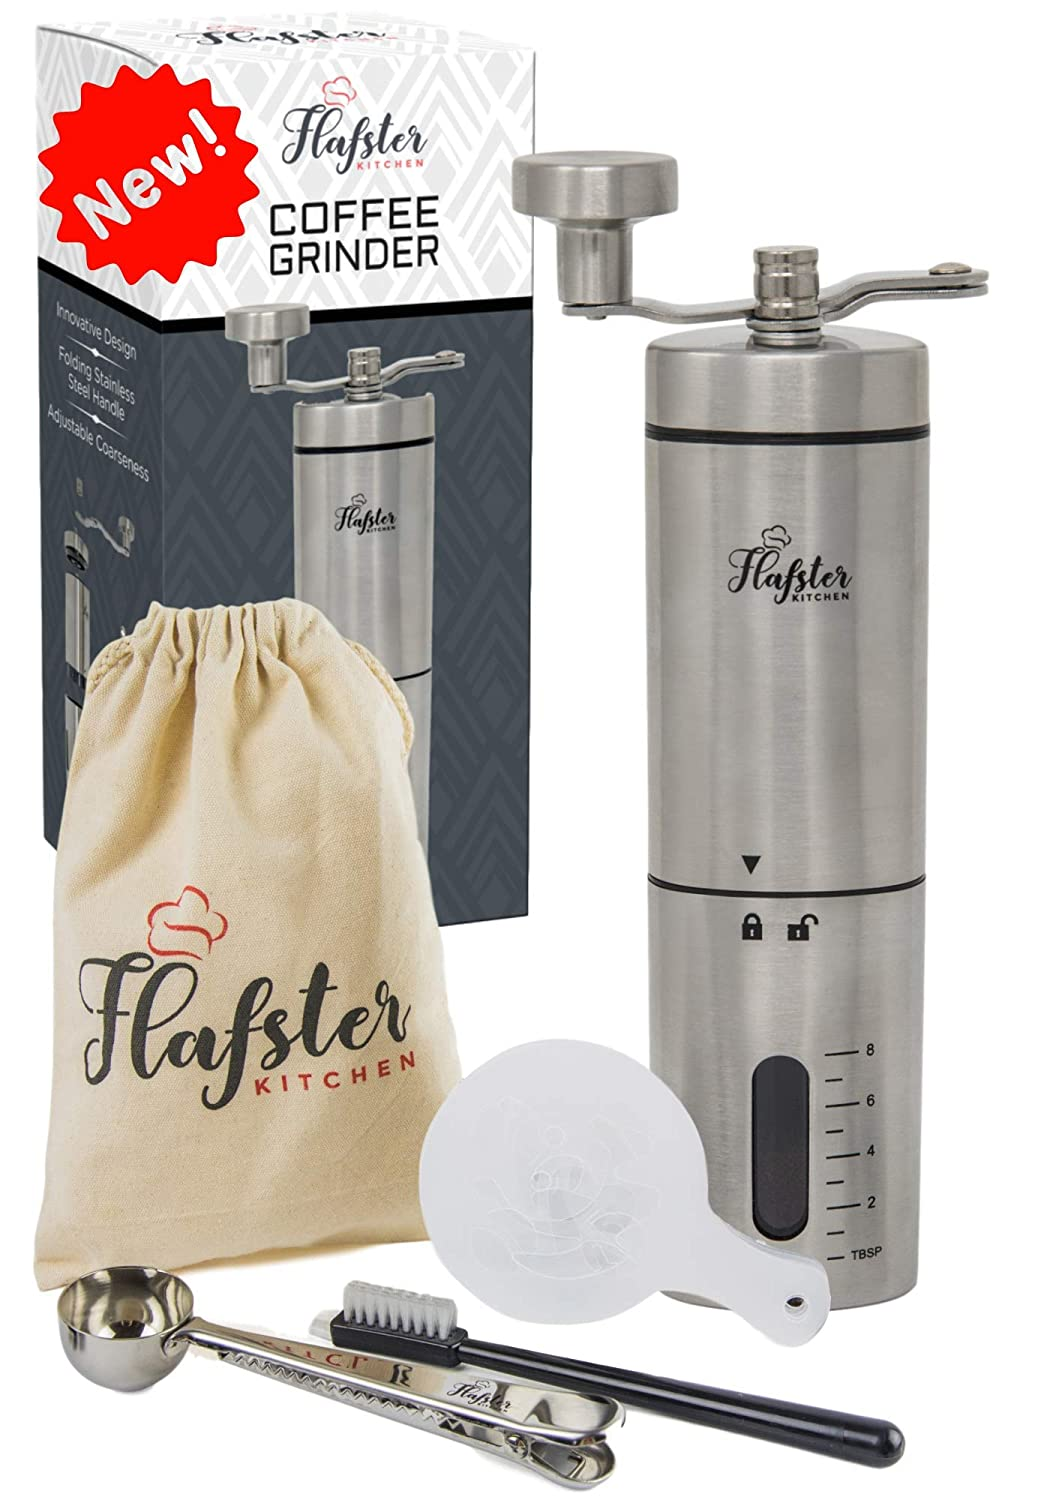 Manual Coffee Grinder- Hand Conical Coffee Bean Grinder With Ceramic Mechanism by Flafster Kitchen- Portable Stainless Steel Burr Coffee Mill With Folding Stainless Steel Handle - Accessories